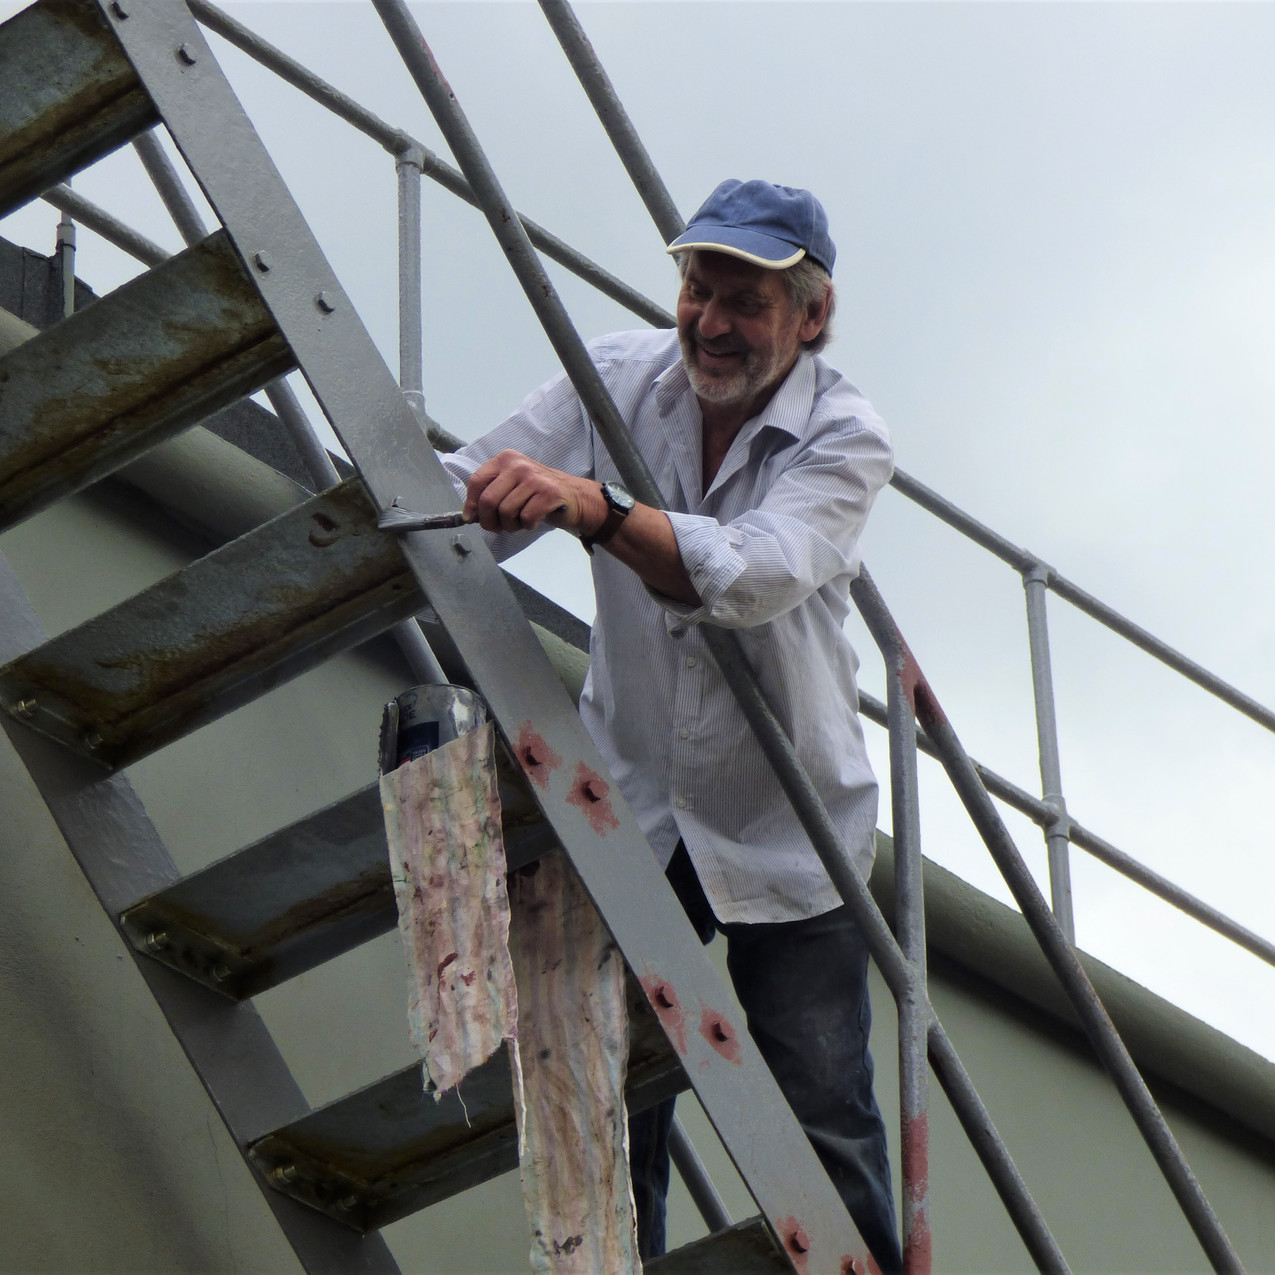 Brian on the control tower stairs